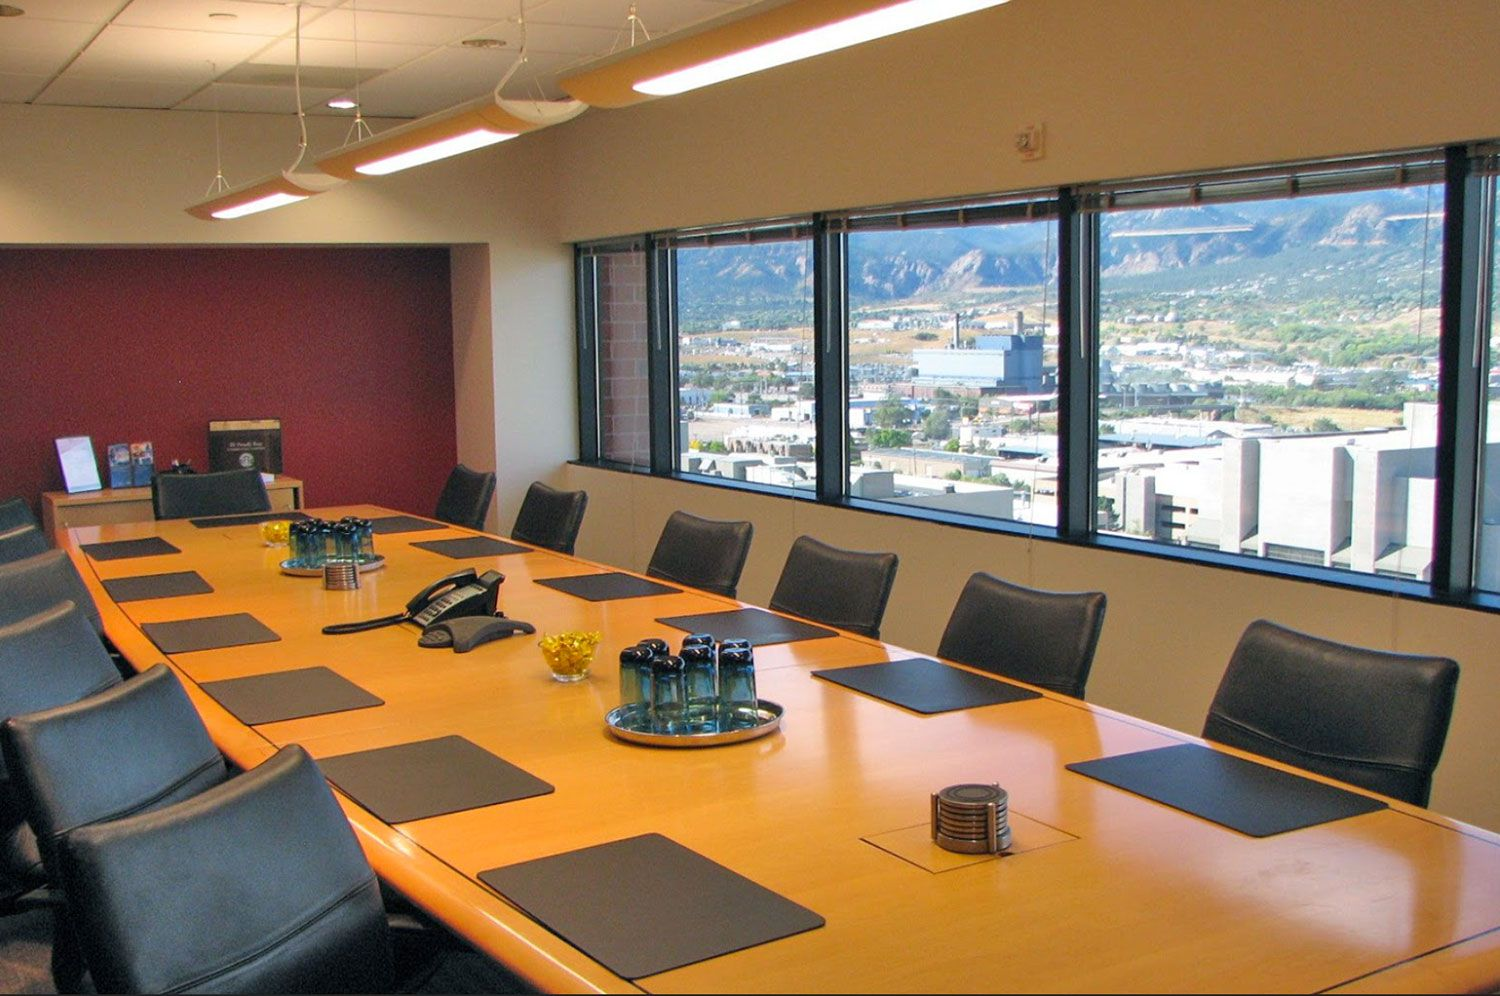 Conference Room for Court Reporting Depositions - Downtown Colorado Springs, Colorado